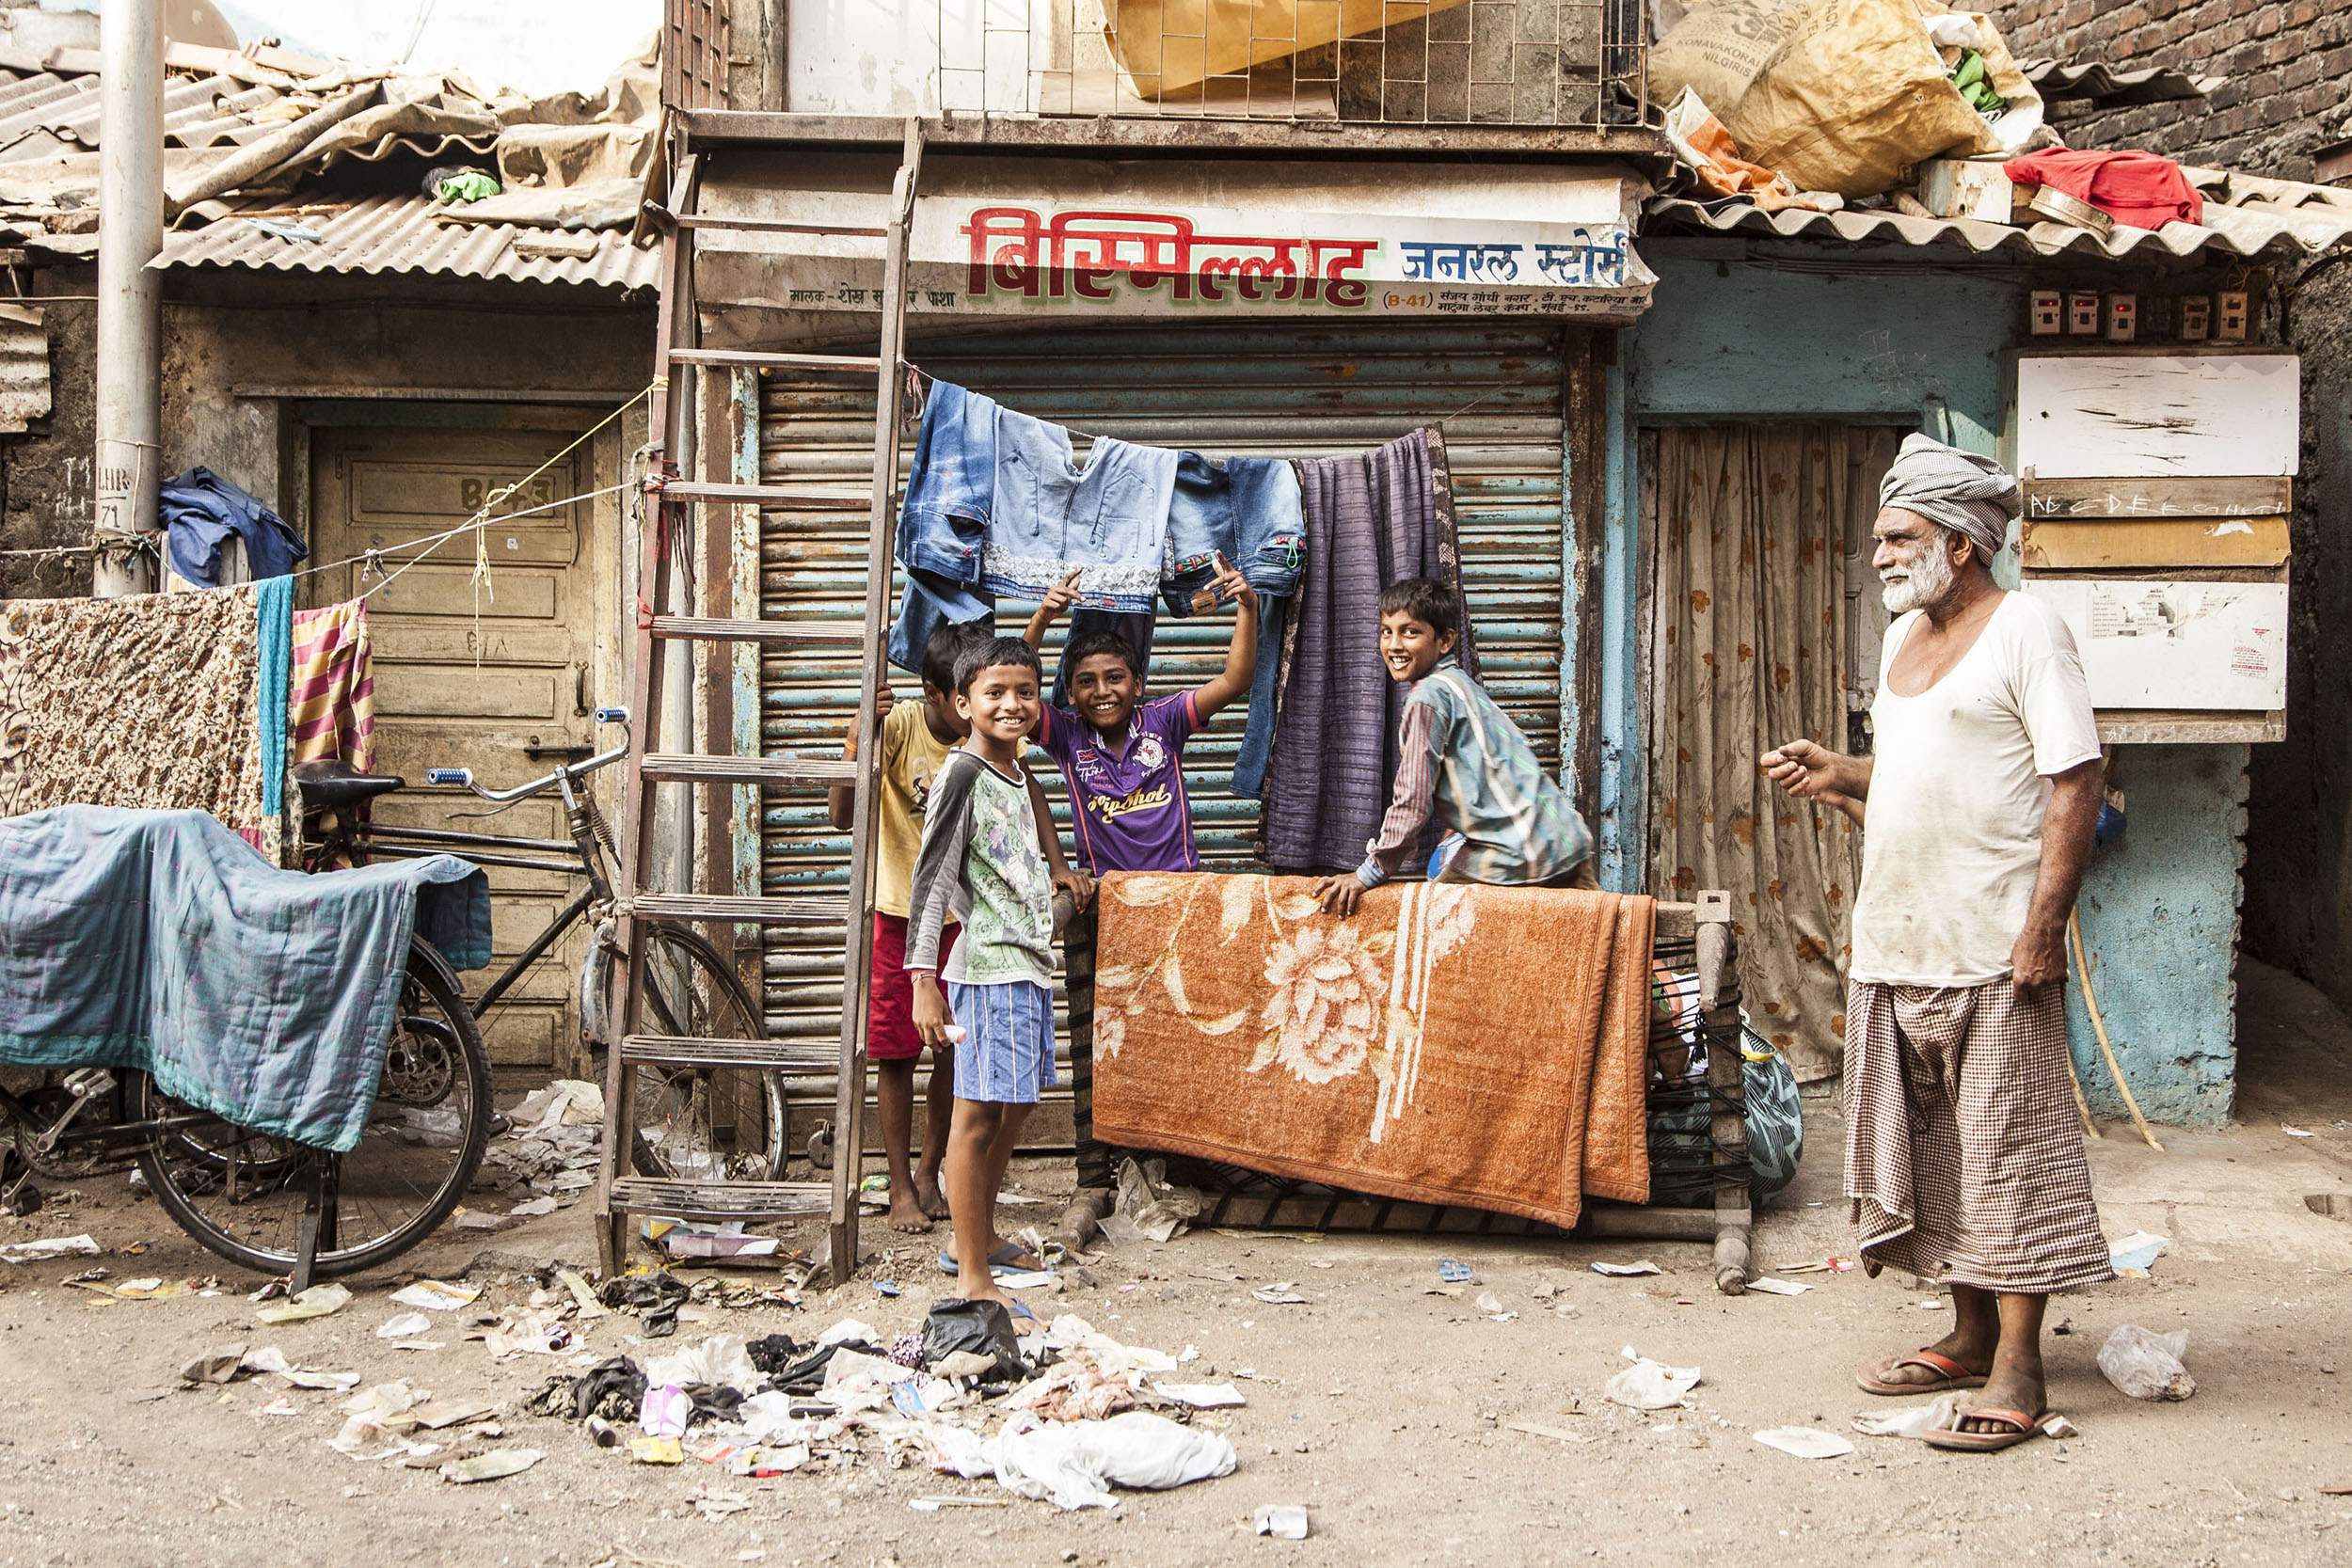 188_IMG_1361_Mumbai_Photo_by_Paul_Marc_Mitchell.jpg